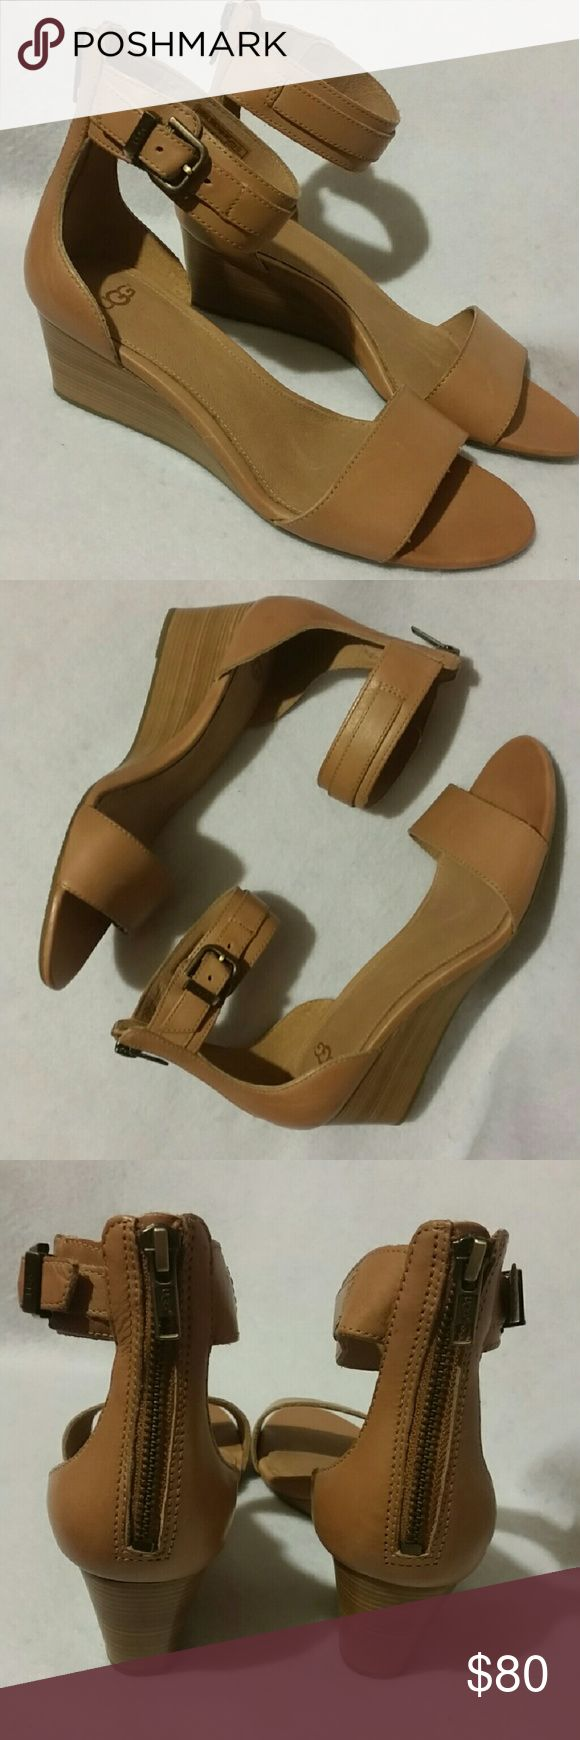 UGG Australia Wedge Sandals NIB Camel UGG Australia Char Wedge Sandals With Back Zipper Closure. UGG Shoes Sandals